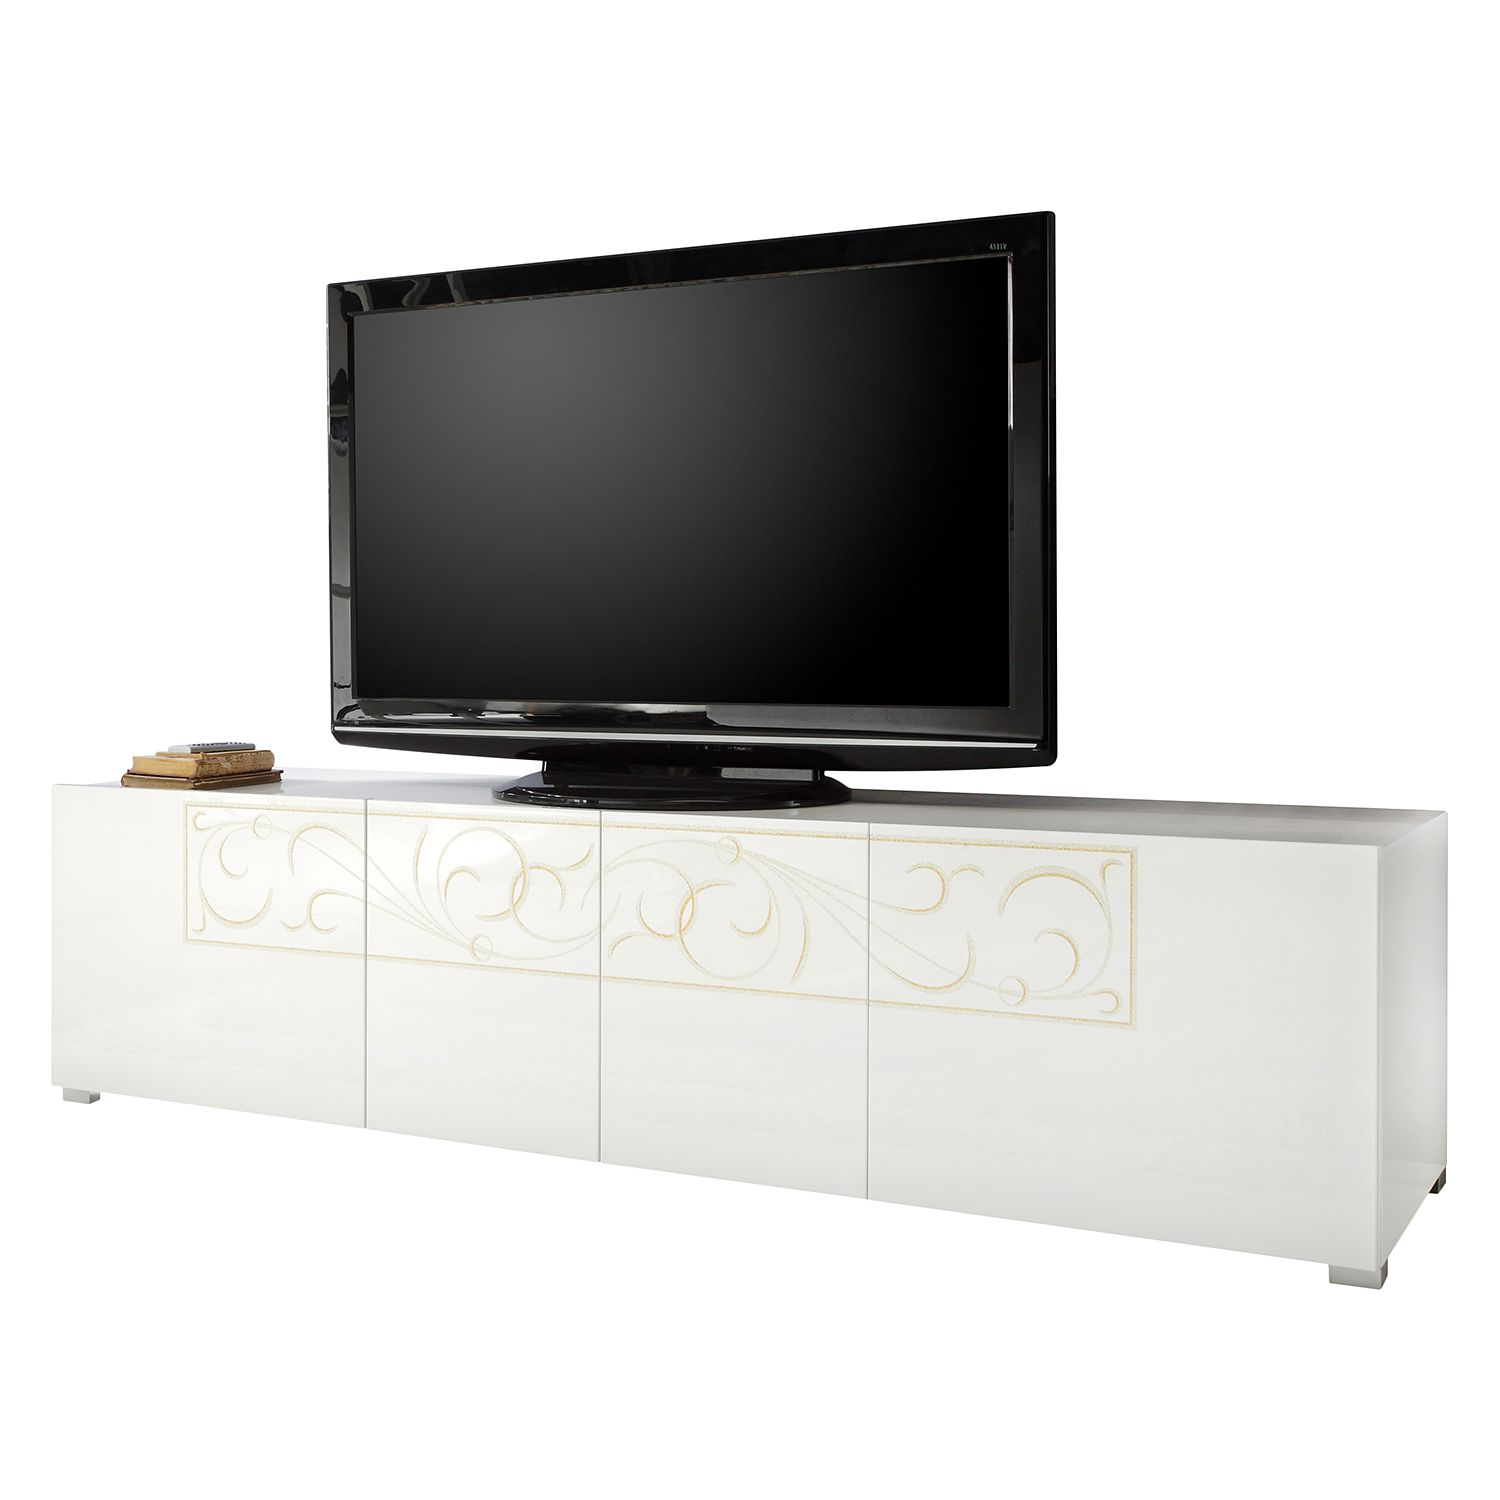 Meuble TV Padua LC - Blanc brillant, Lc Mobili